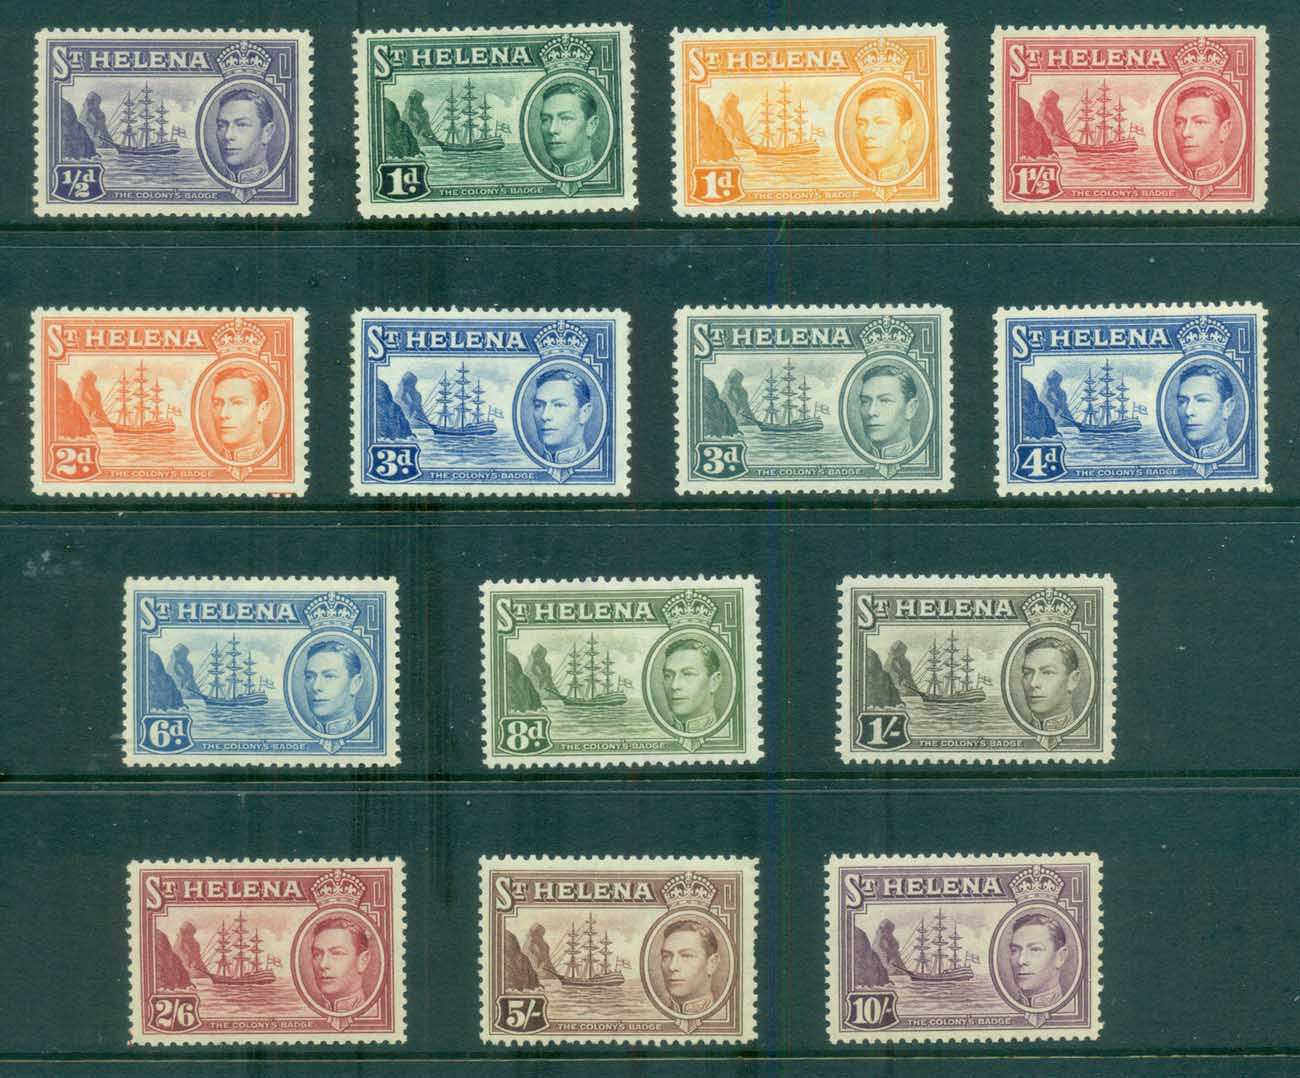 St Helena 1938-40 KGVI Pictorials, Bridge of the Colony MLH/MUH